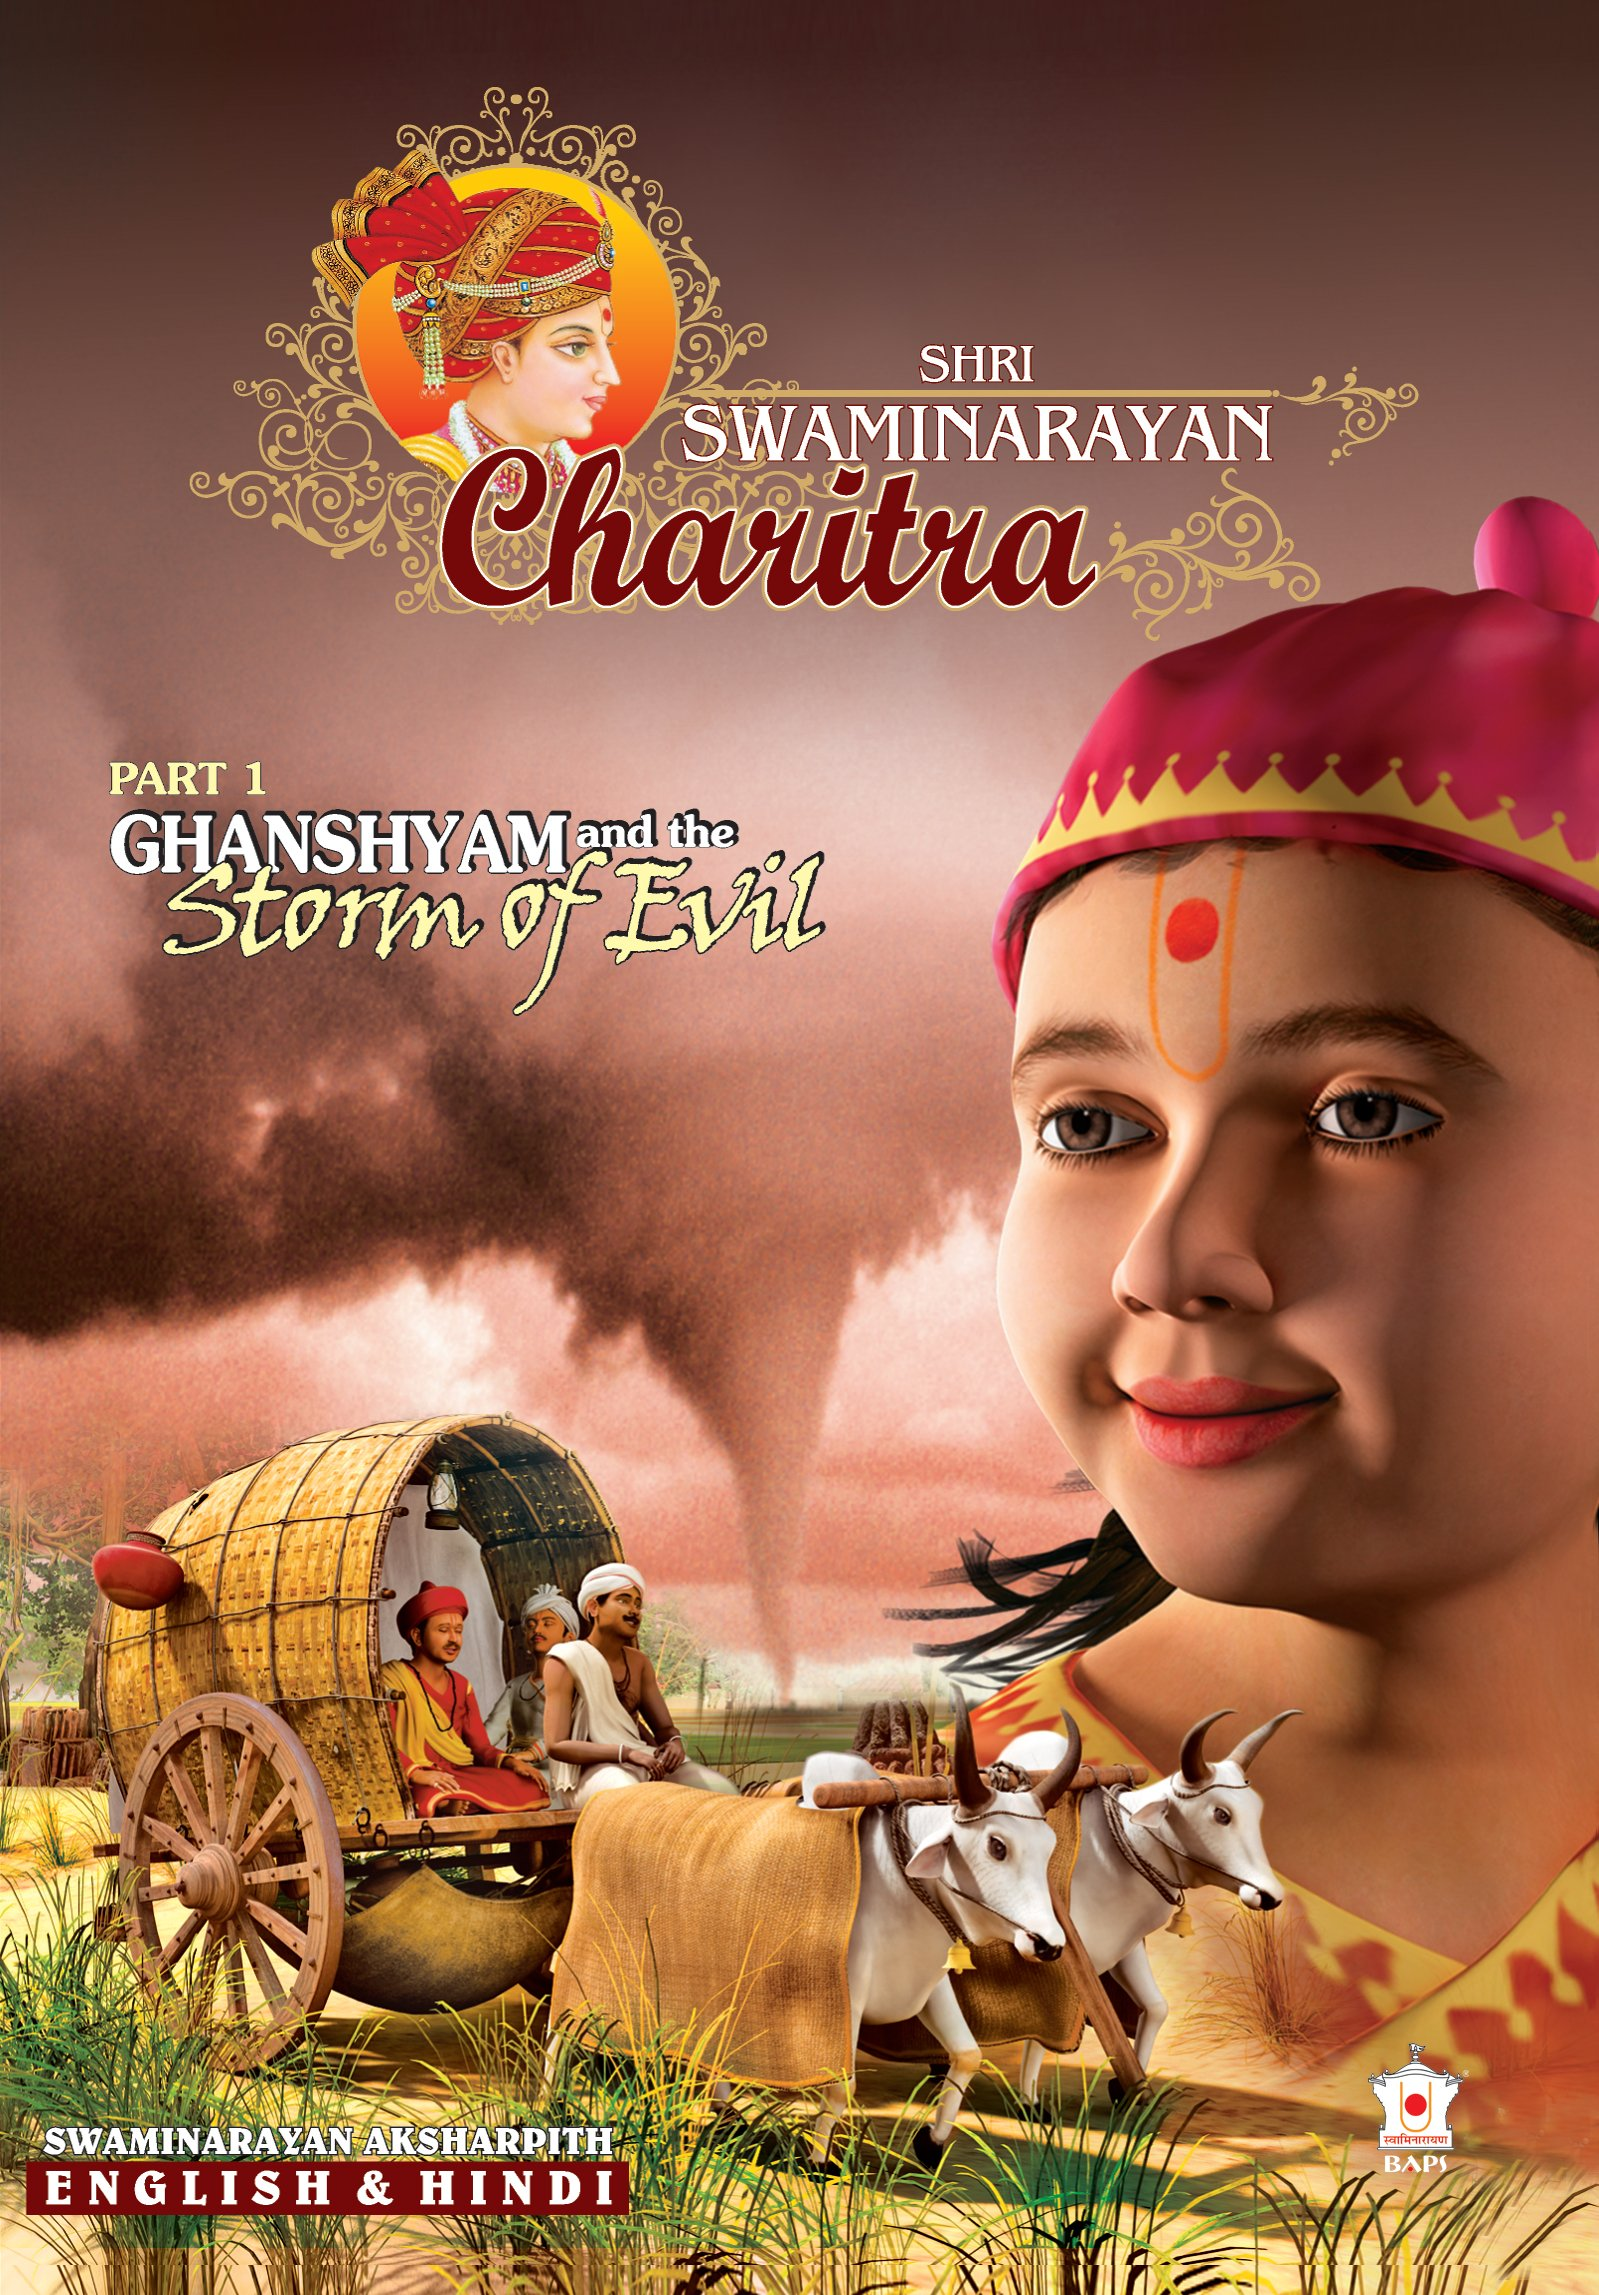 Shri Swaminarayan Charitra Part 2 2019 Hindi 200MB HDRip 480p Download